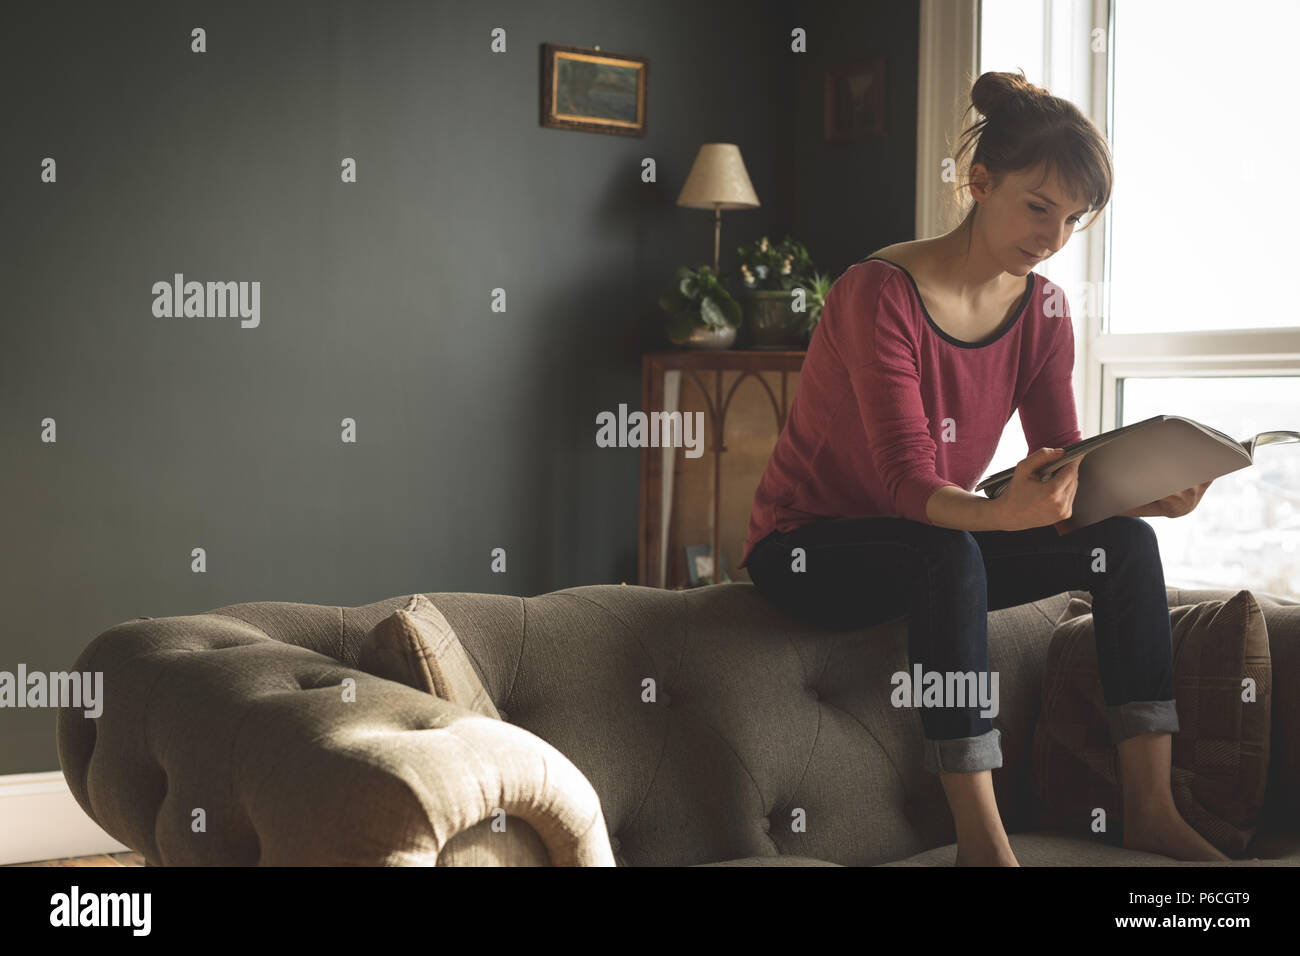 Woman Reading book in living room Banque D'Images